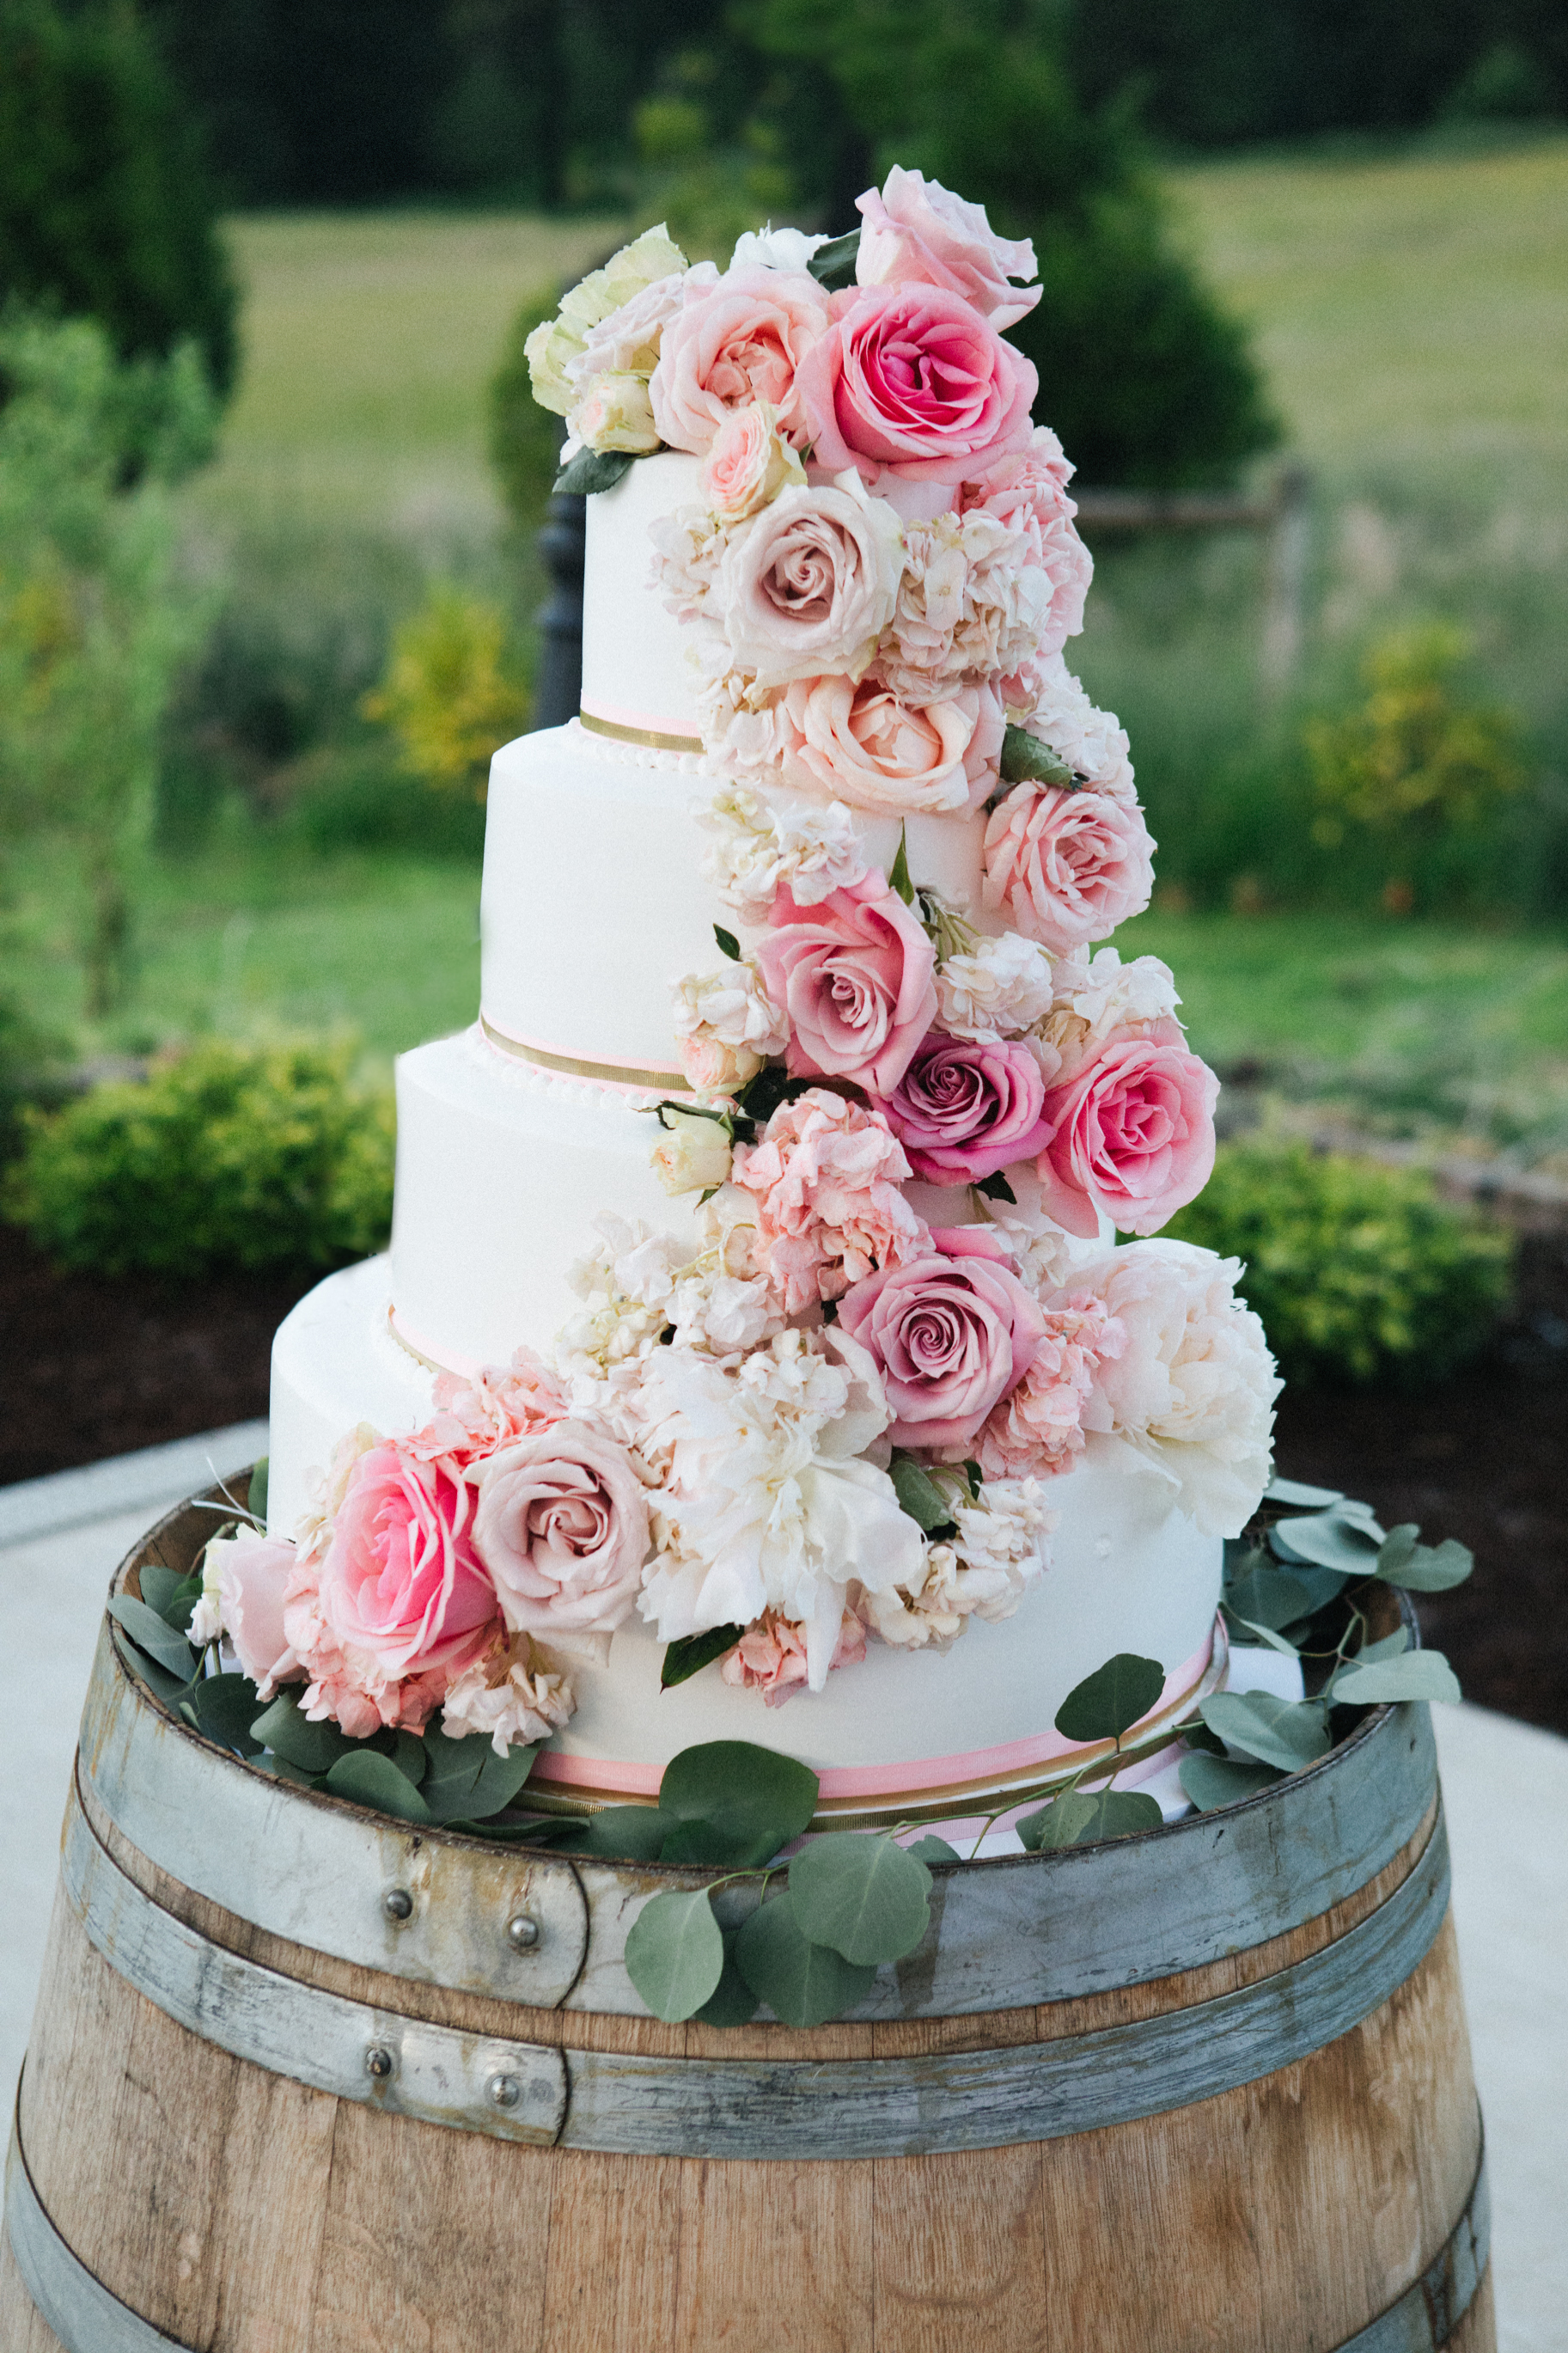 Did you know that wooden barrels make the perfect cake stand? Look here for all of our country barn reception decor ideas. You'll love them.